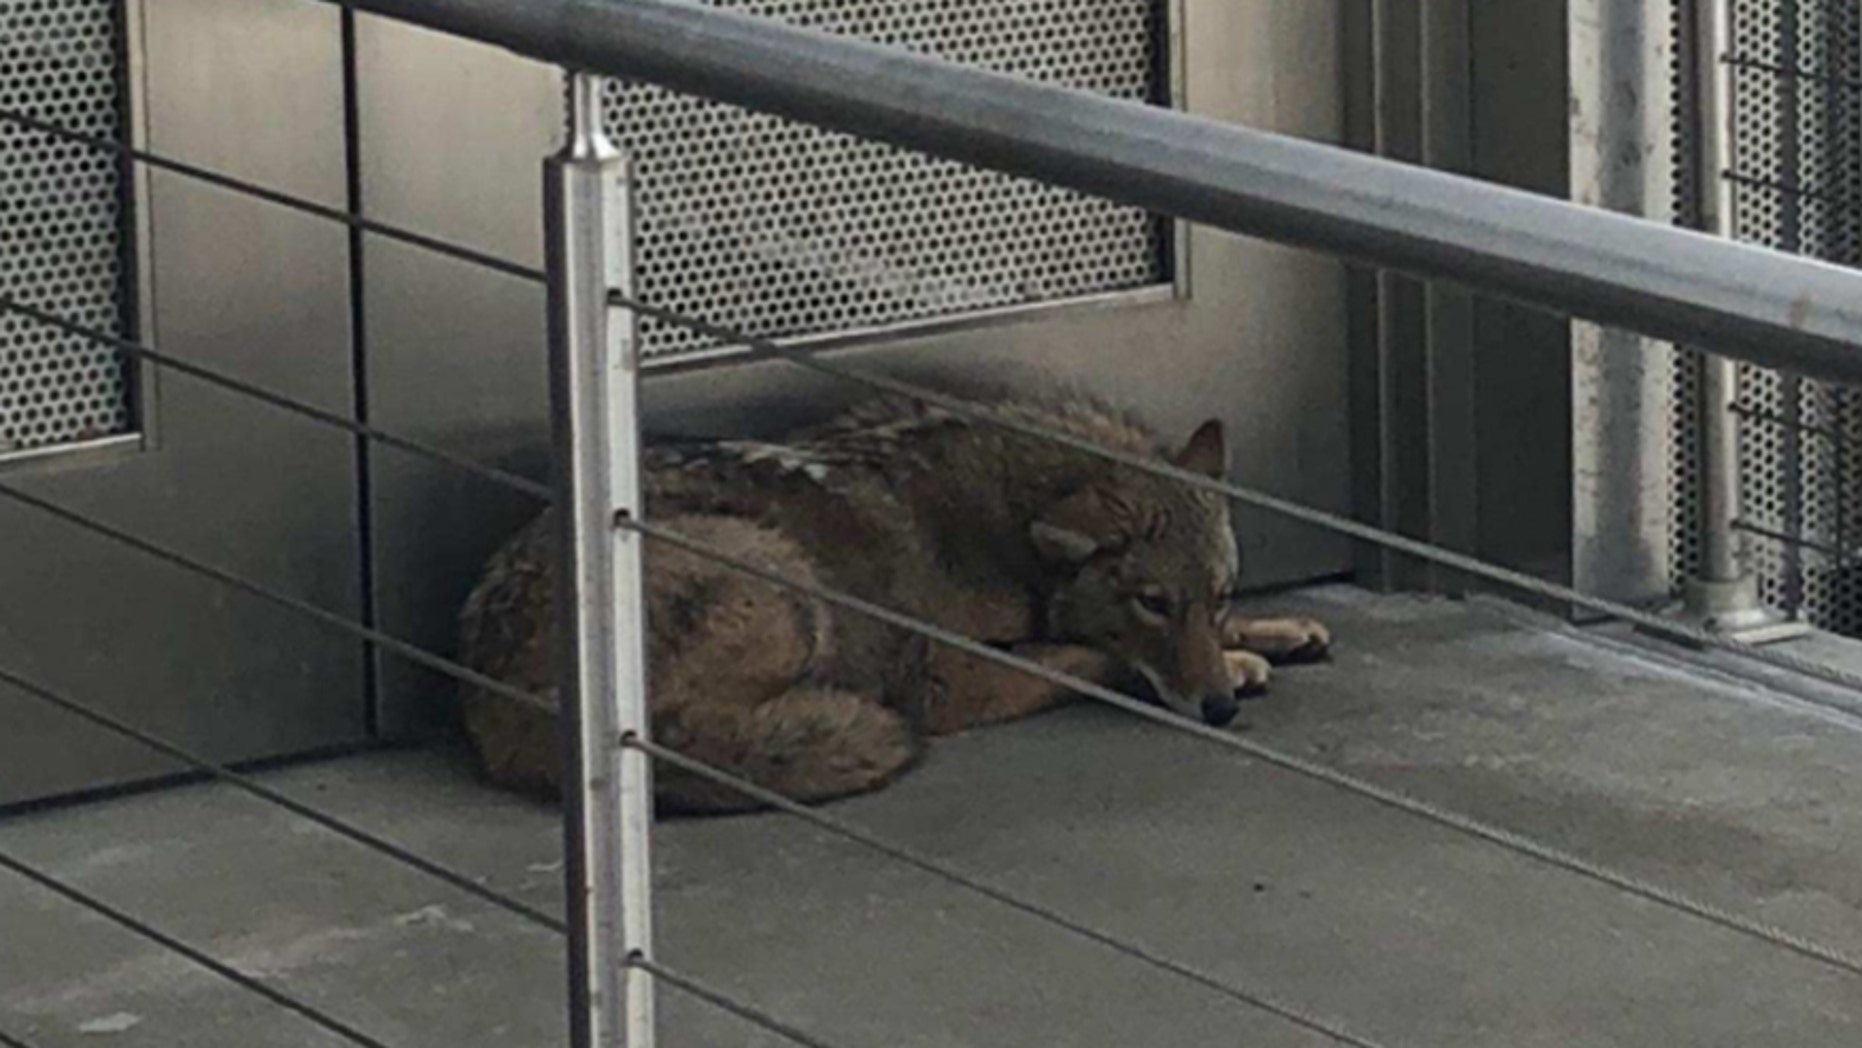 March 27, 2018: A coyote was found on an outdoor mezzanine at a museum in Albany, N.Y.